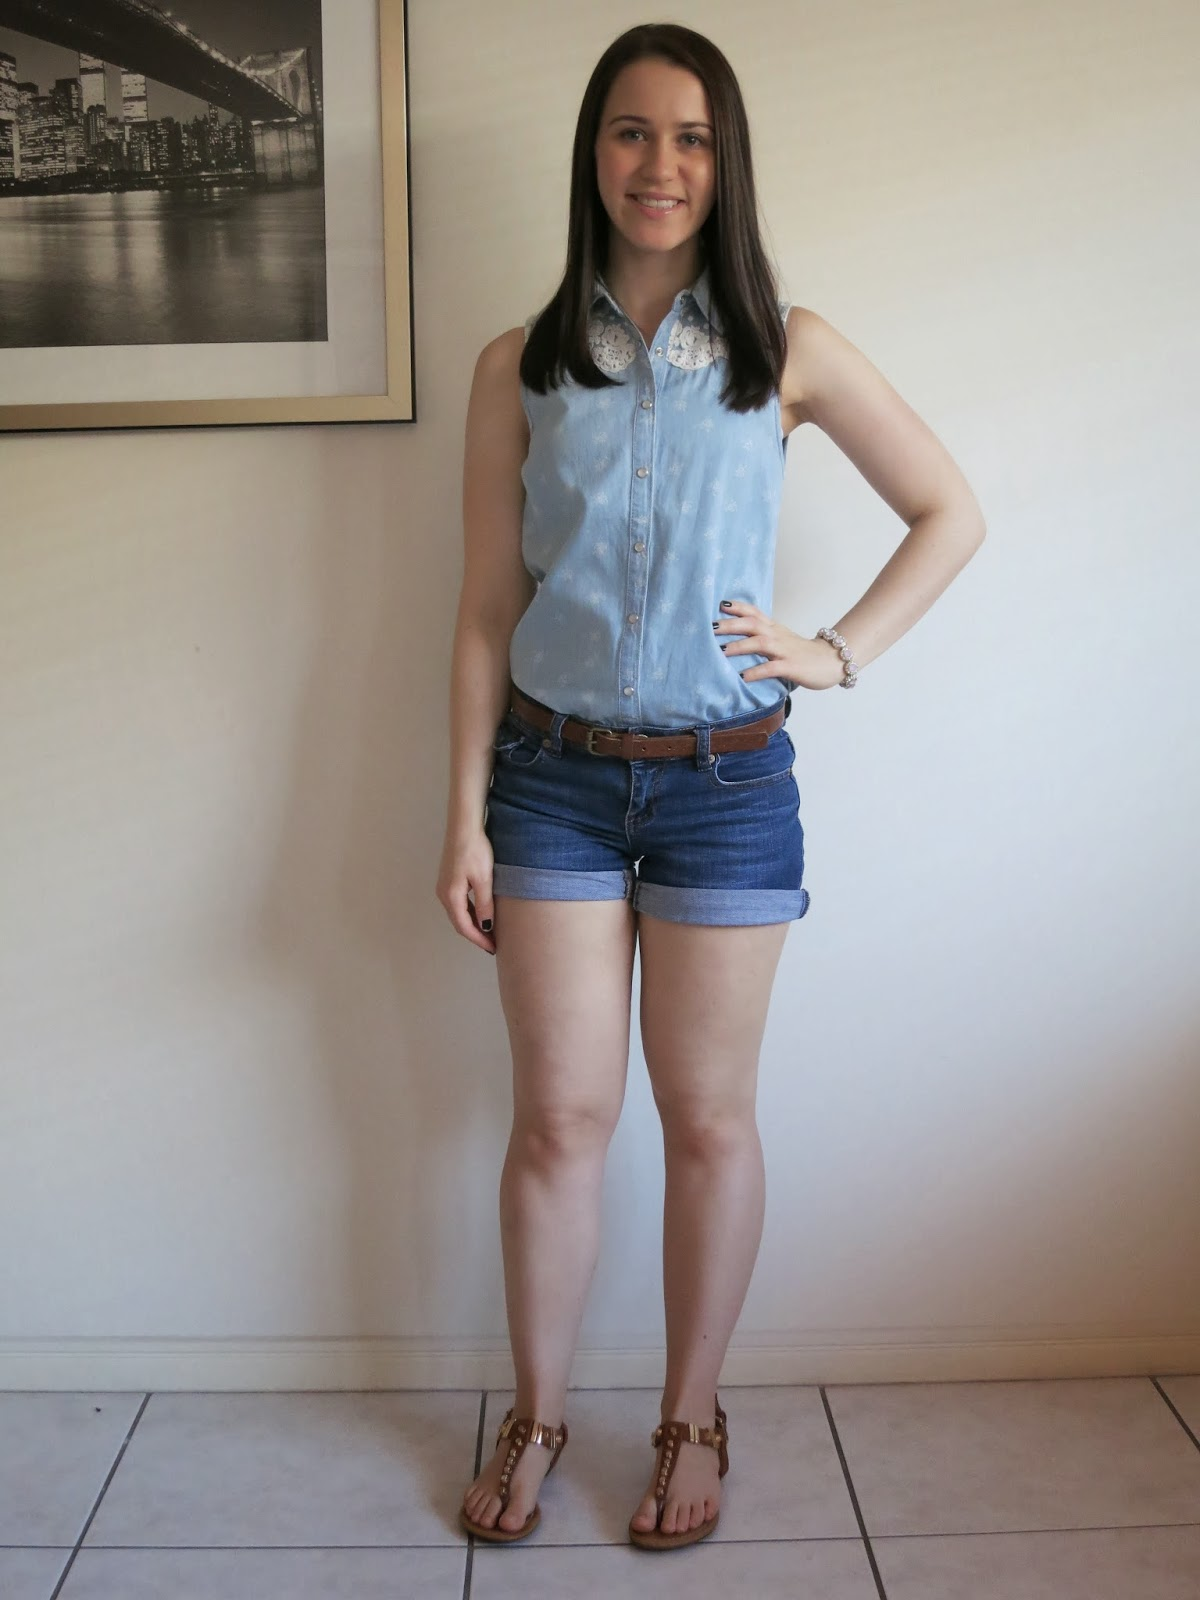 uni outfit, college outfit, petite girl outfit, chambray, denim shorts, tan sandals, summer outfit, spring outfit